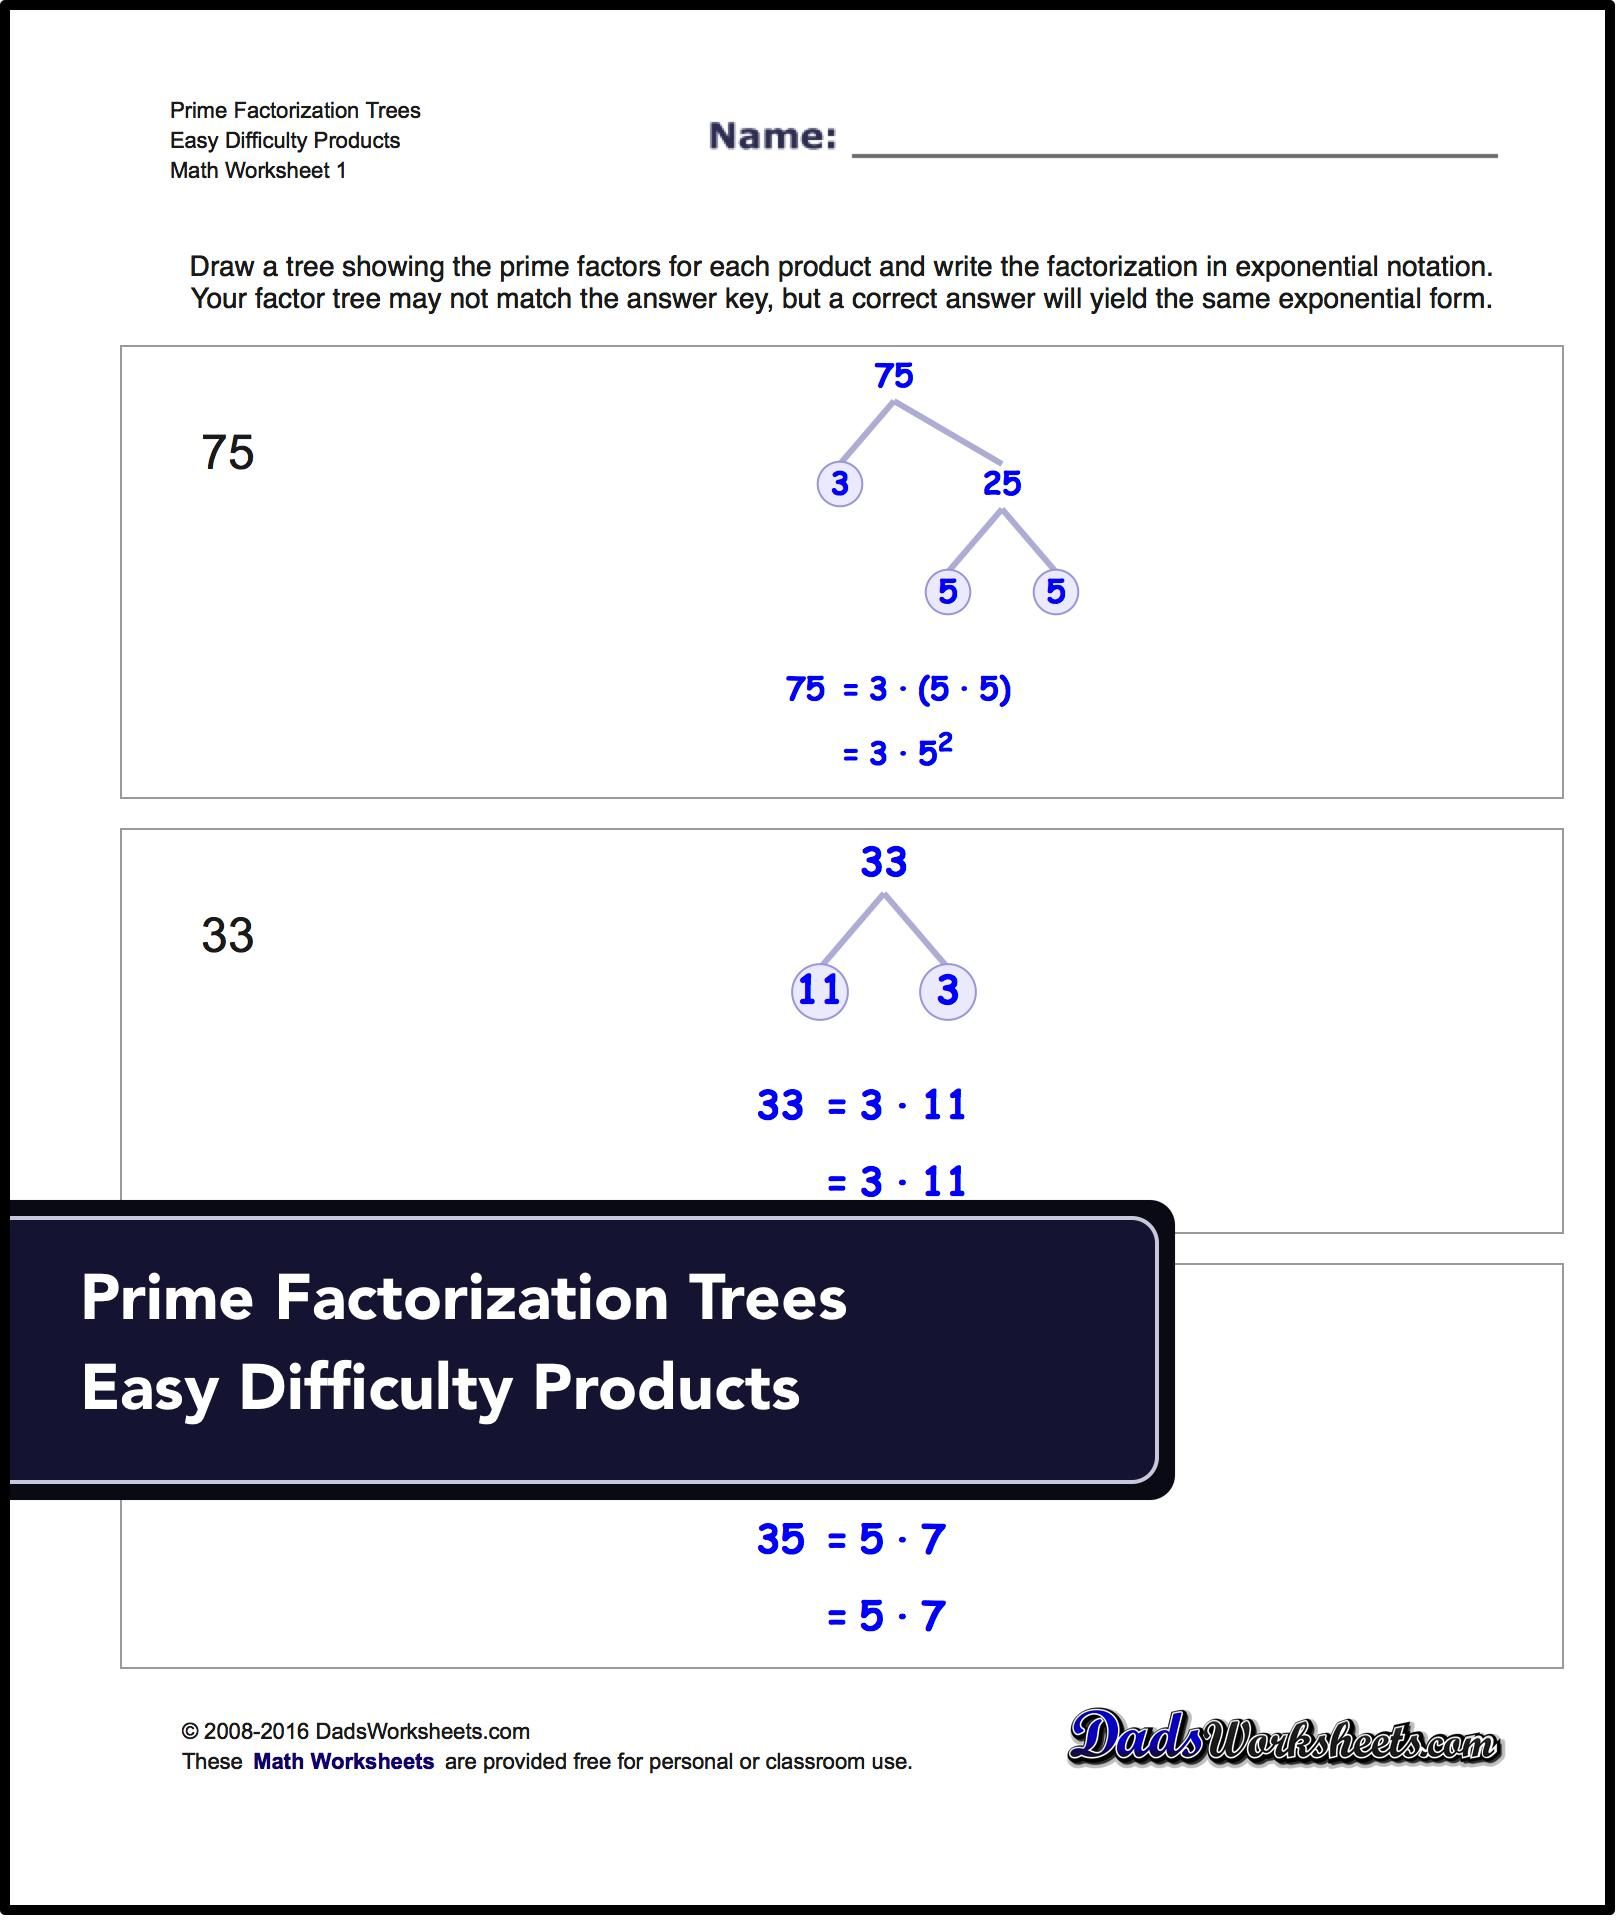 worksheet Prime Factorization Using Exponents Worksheet factorization gcd lcm printable worksheets for free math prime factorizationmath worksheetsprintable